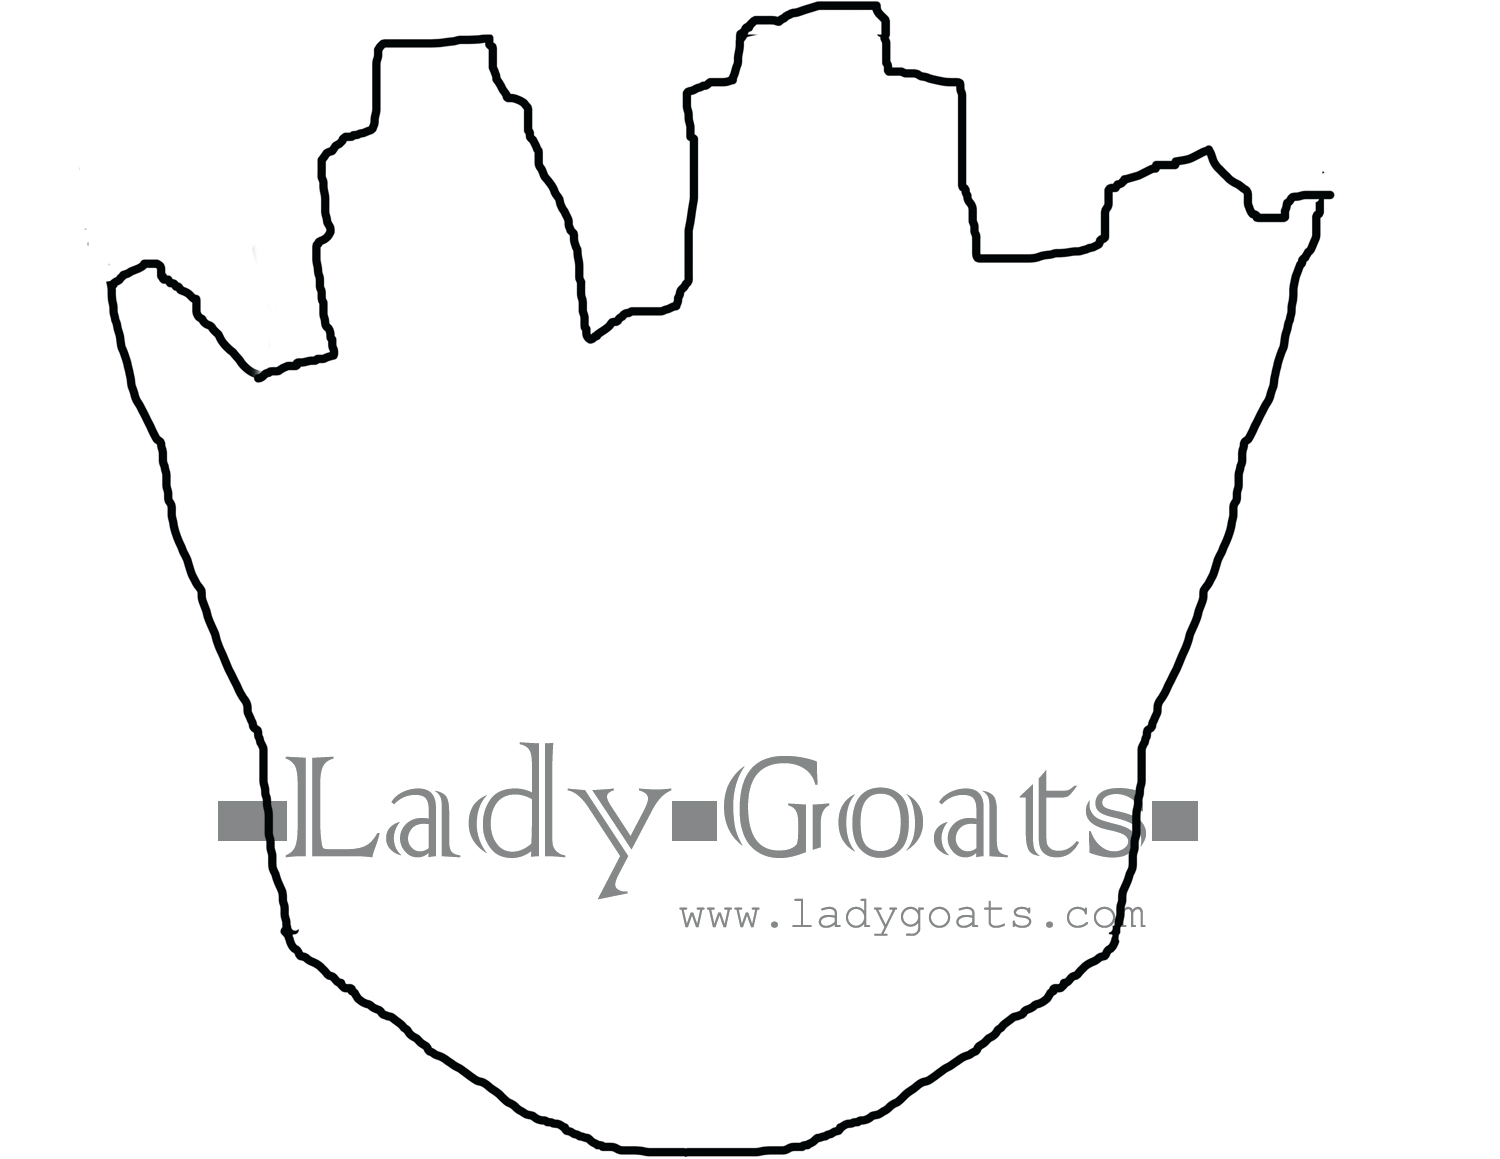 Fantastic 10 Words Not To Put On Your Resume Thick 100 Free Resume Builder Flat 100 Template 1096 Template Old 15 Minute Schedule Template White1920s Party Invitation Template Lady Goats: Last Minute Costume Idea: DIY Groot Mask For 33 Cents